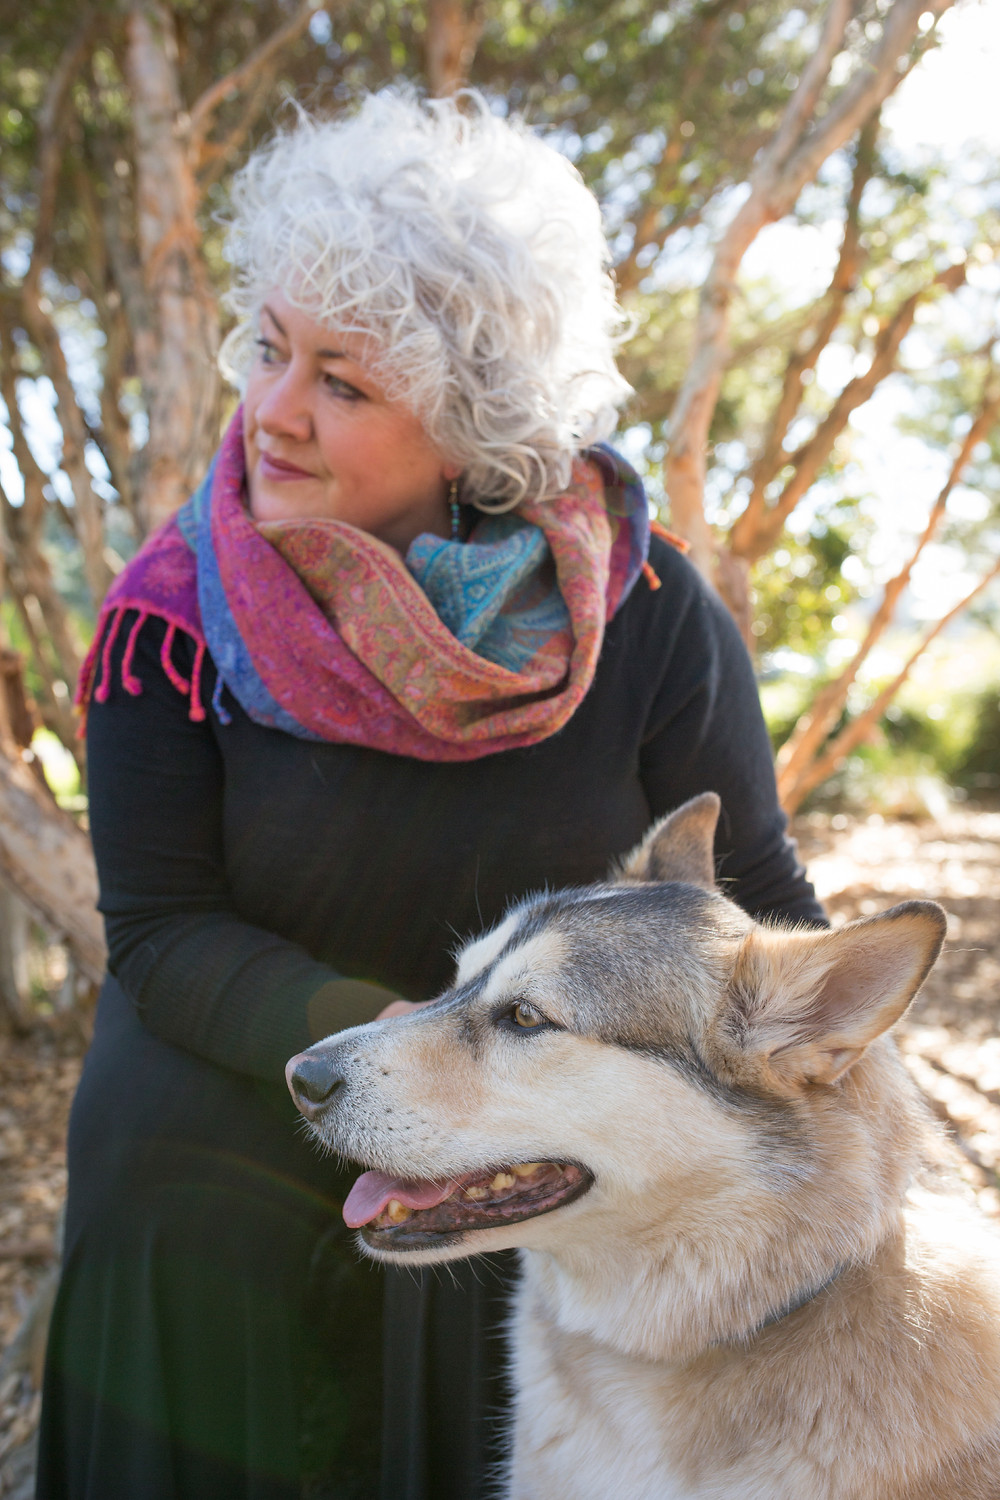 Dr Annetta Mallon sits down with her dog Cully behind her in front of a tree outdoors. Annetta has curly white hair, black clothing and a colourful scarf around her neck. Cully is an Alaskan Malamute X German Shepherd dog and sits in front of Annetta - both woman and dog are looking to the left in the picture.